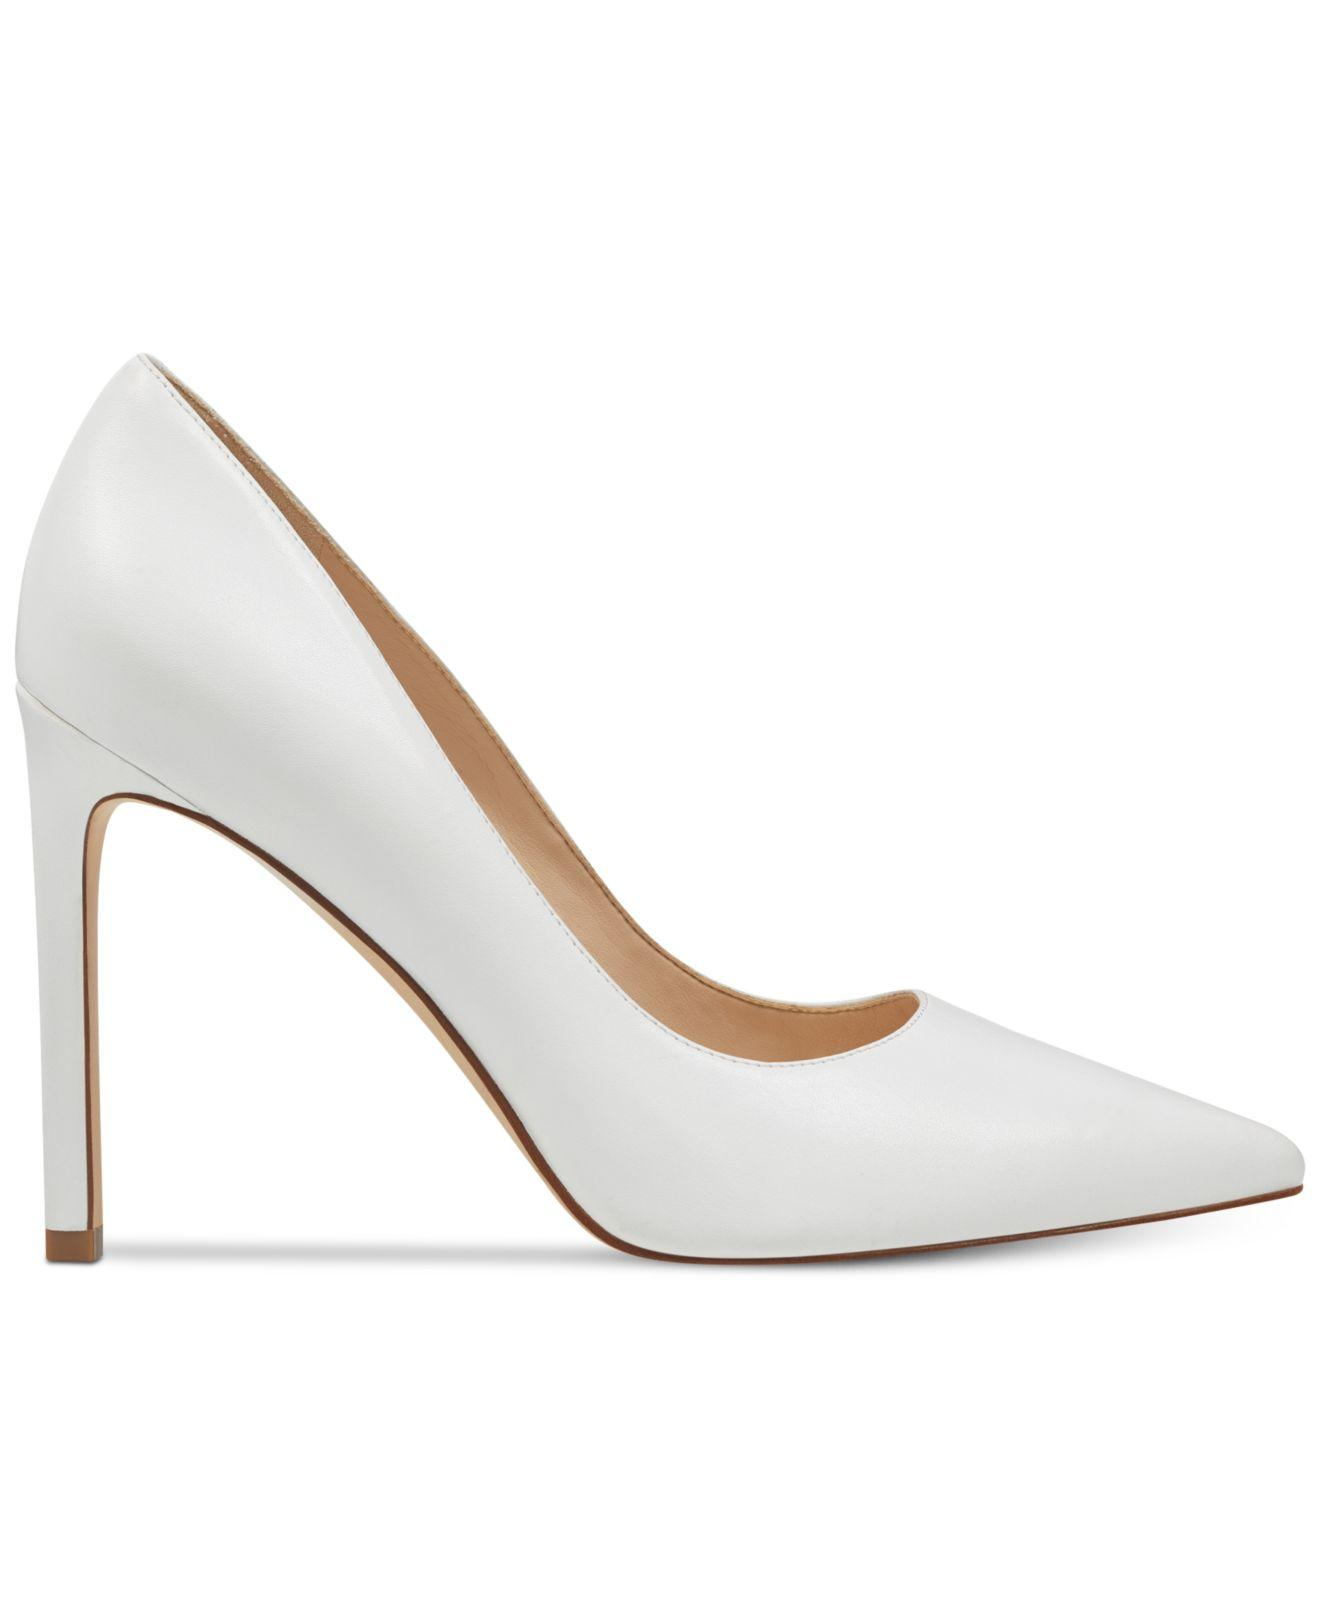 d1ad545f07c3 Lyst - Nine West Tatiana Pumps in White - Save 50.63291139240506%